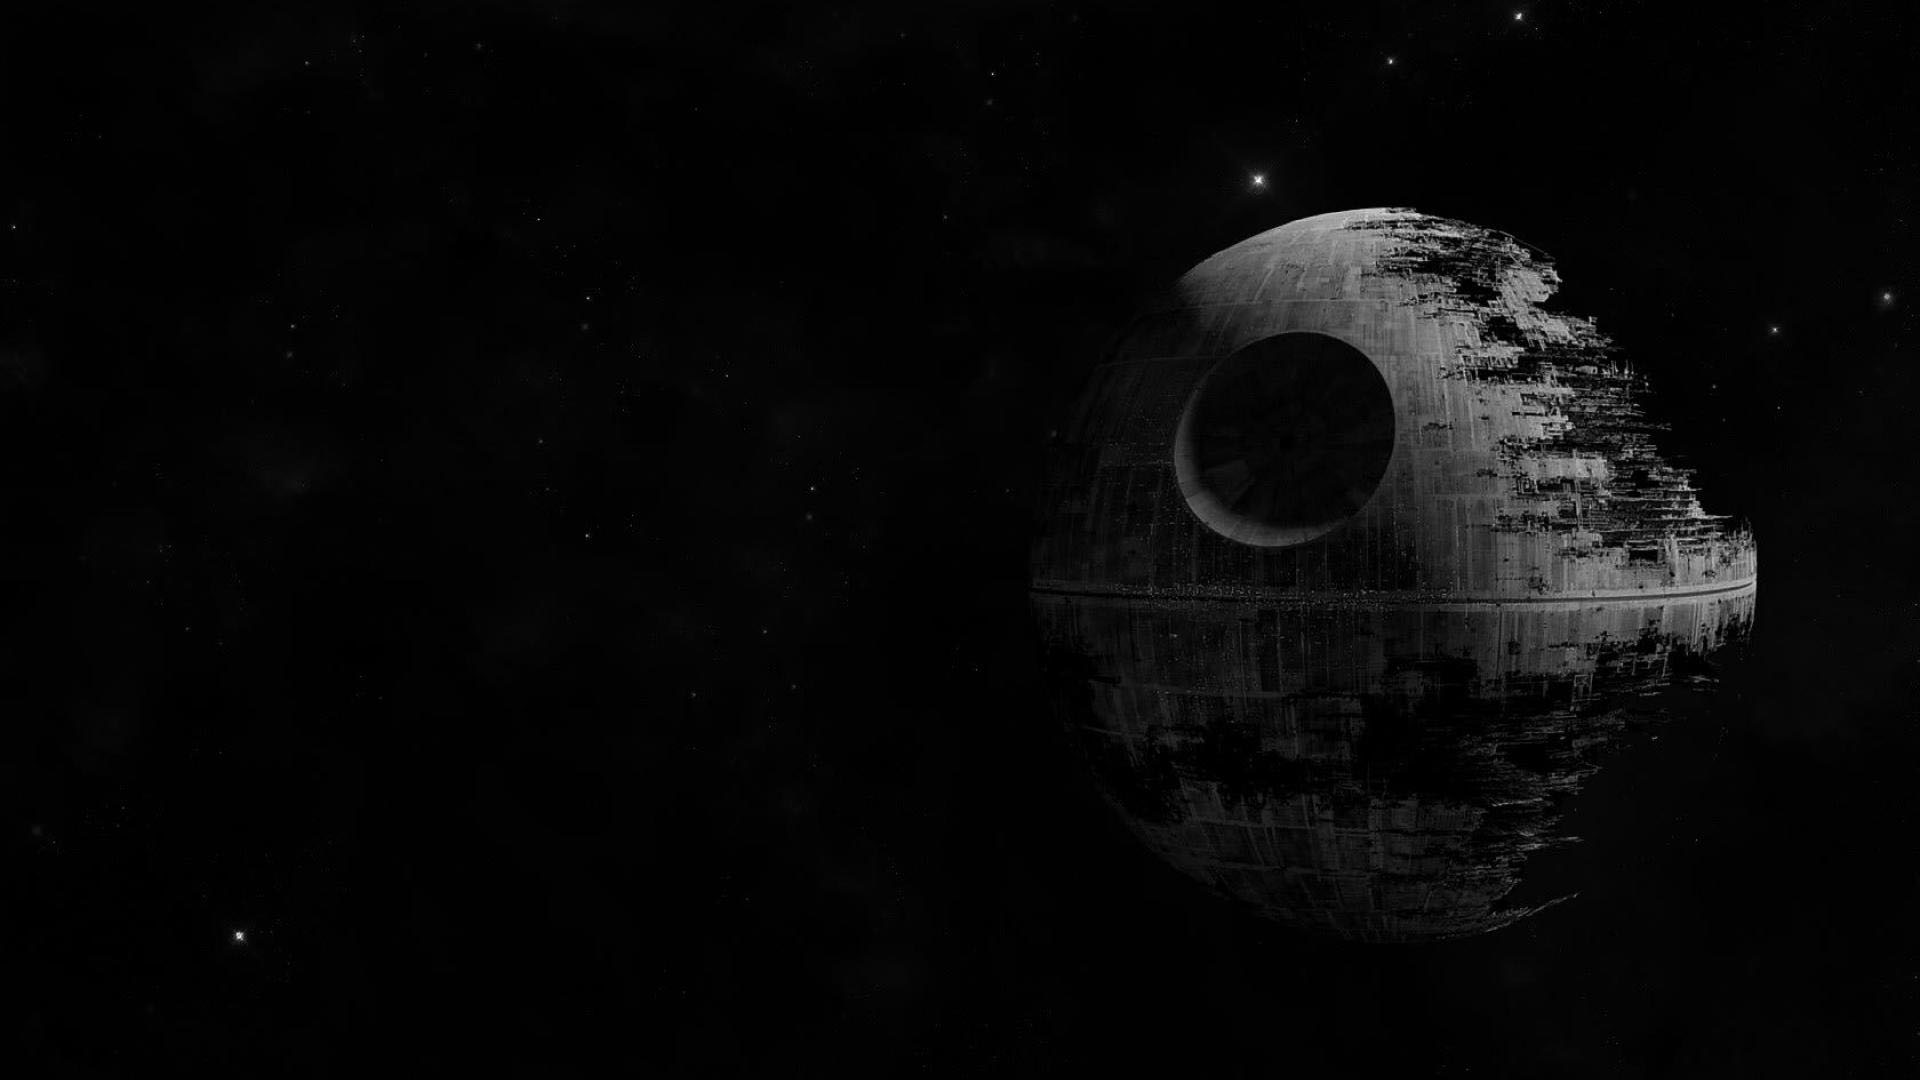 Star wars wallpaper HD 1920x1080